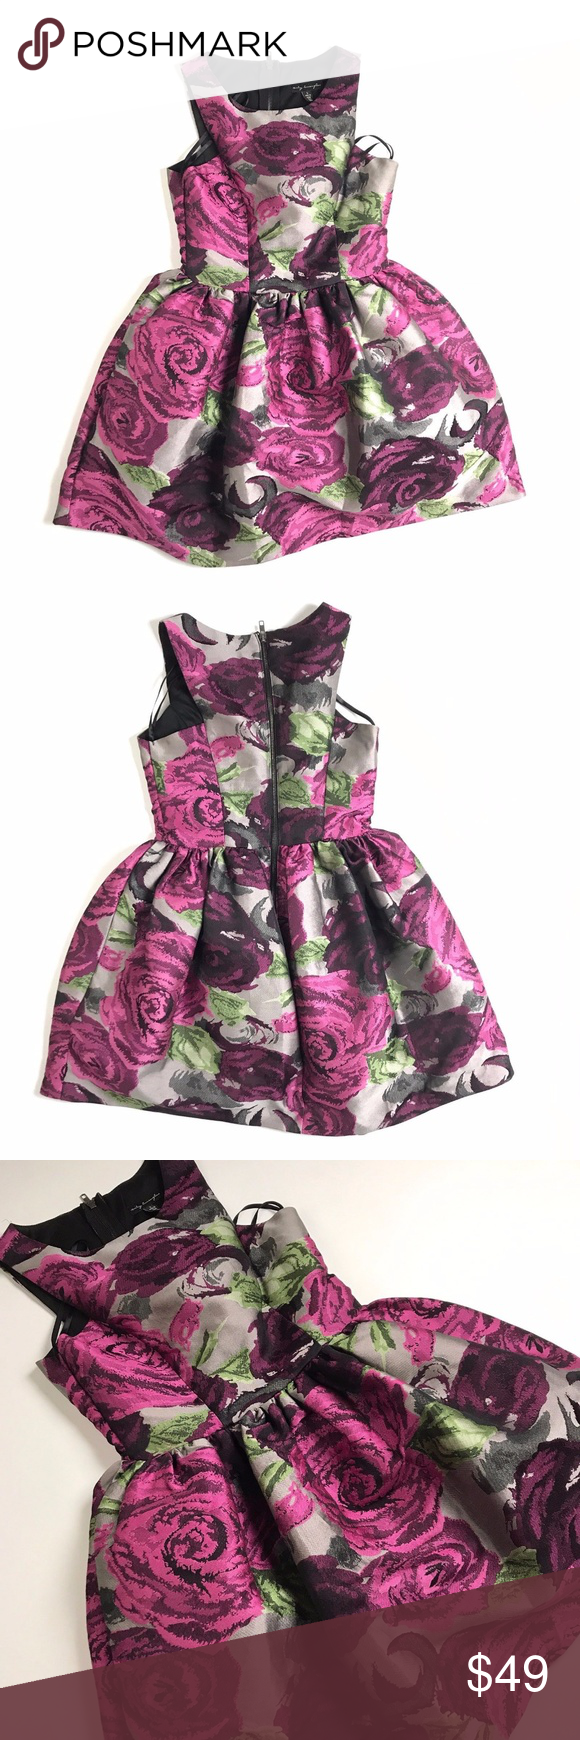 City triangles floral a line dress fit flare triangle